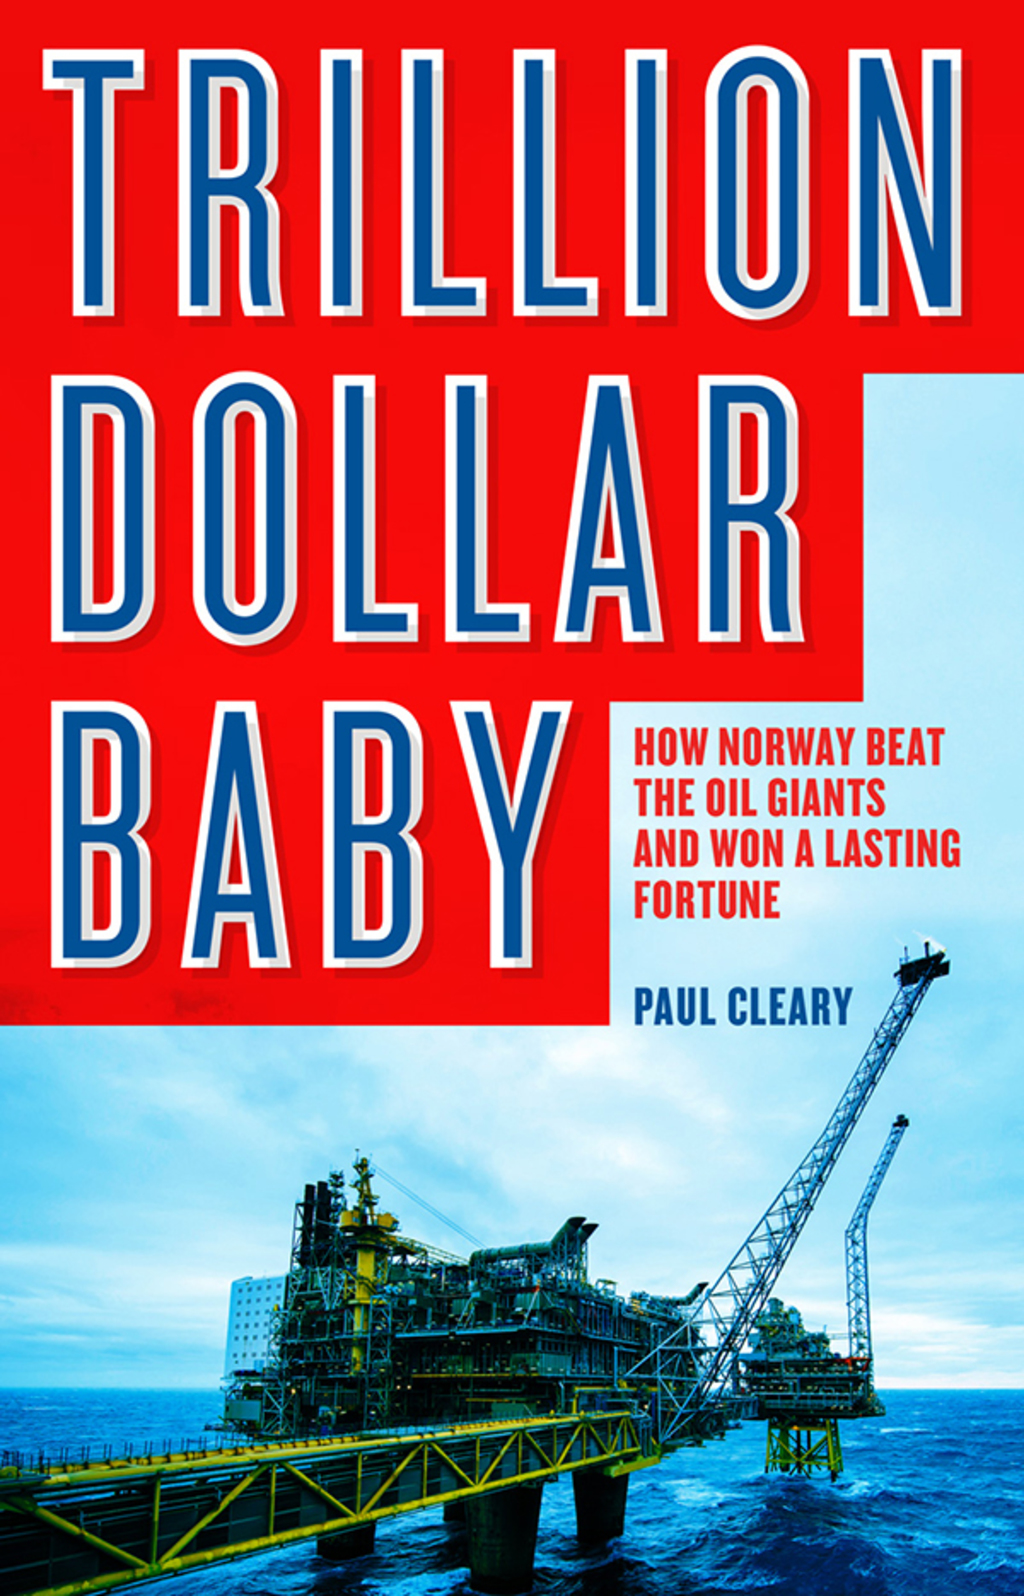 By Paul Cleary PRINTISBN: 9781863958691 E-TEXT ISBN: 9781925435214 Edition: 0